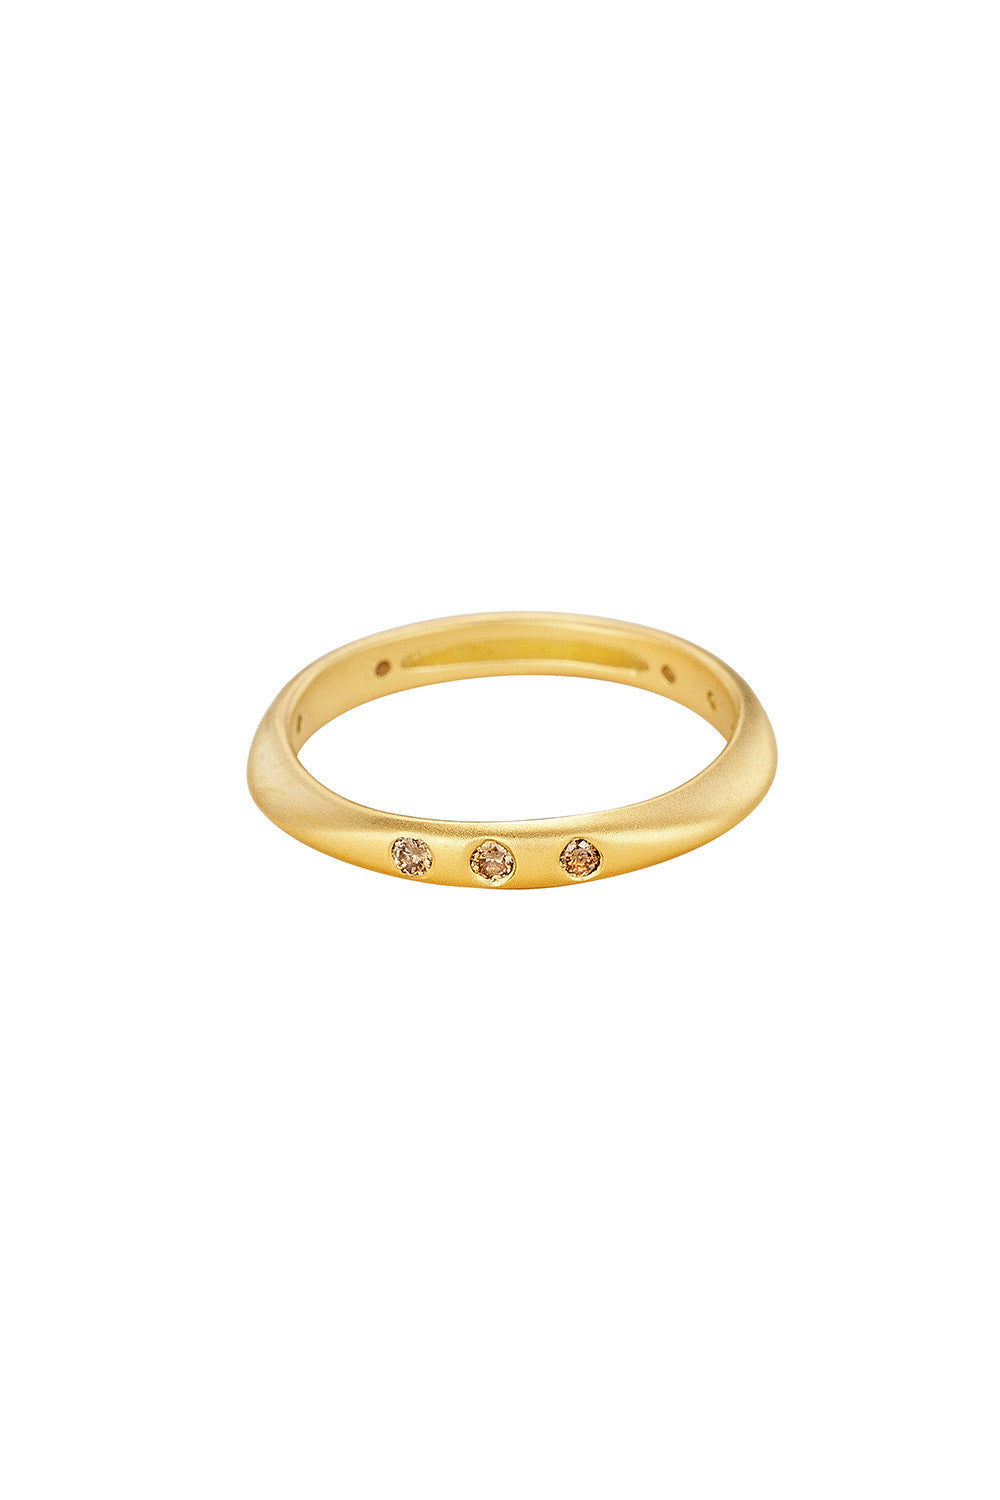 HALO Stackable Ring in Yellow Gold with Champagne Diamonds